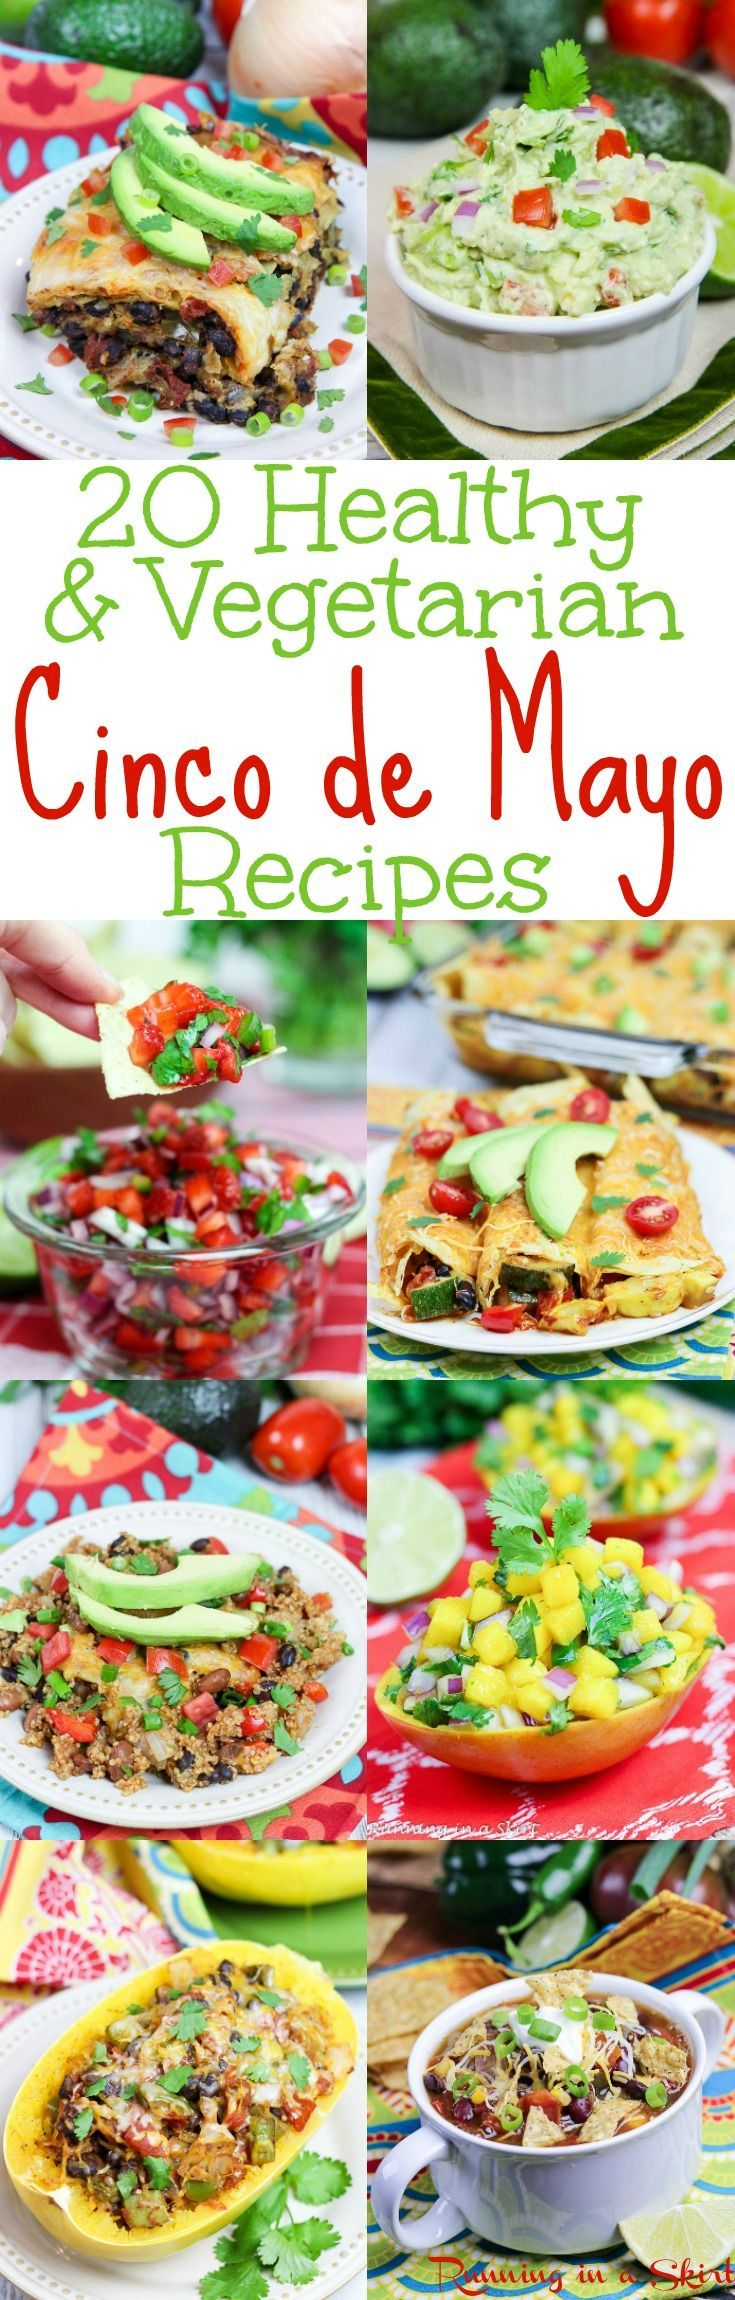 20 Healthy & Vegetarian Cinco de Mayo Recipes!  Tasty food and party ideas and menu.  Easy, simple and fun ideas for Mexican dinners at home.  Includes appetizers, crock pot recipes, homemade salsa and vegetarian main courses. / Running in a Skirt